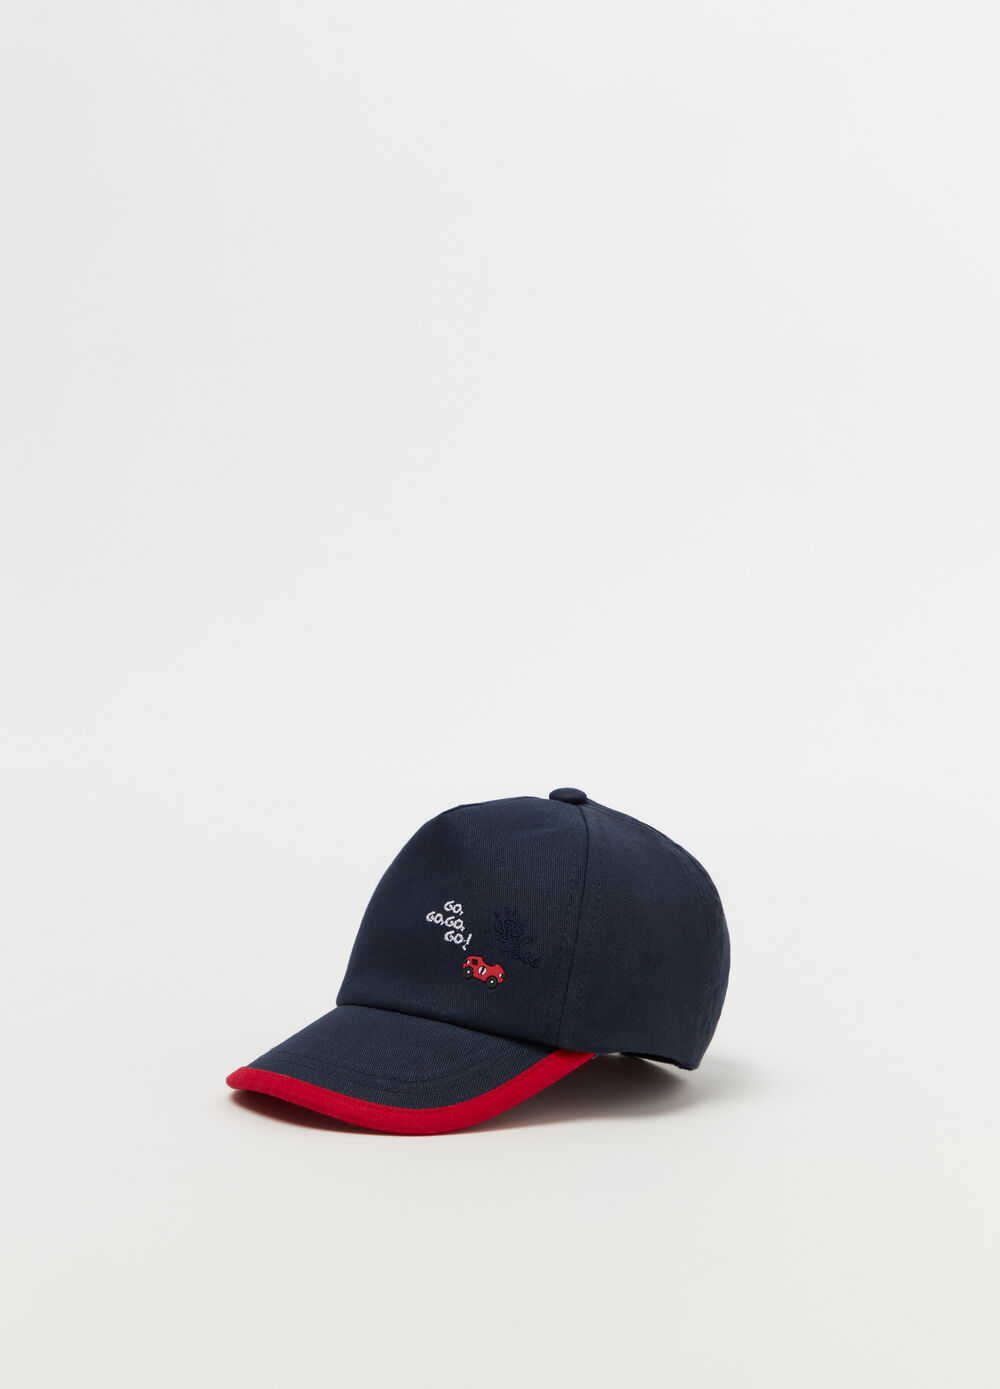 Hat with visor, lettering and car